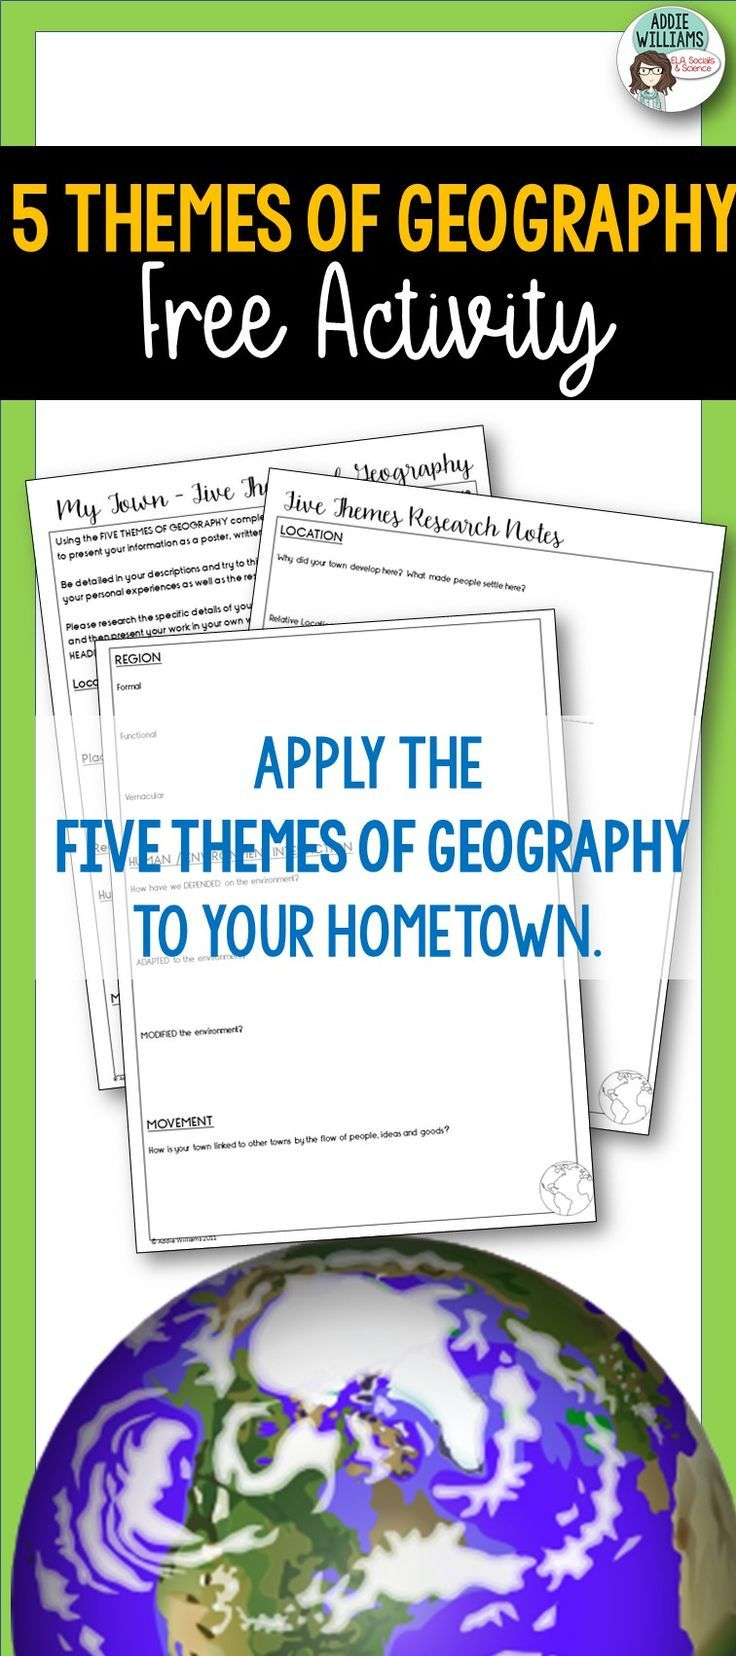 FREE Five Themes of Geography Activity!